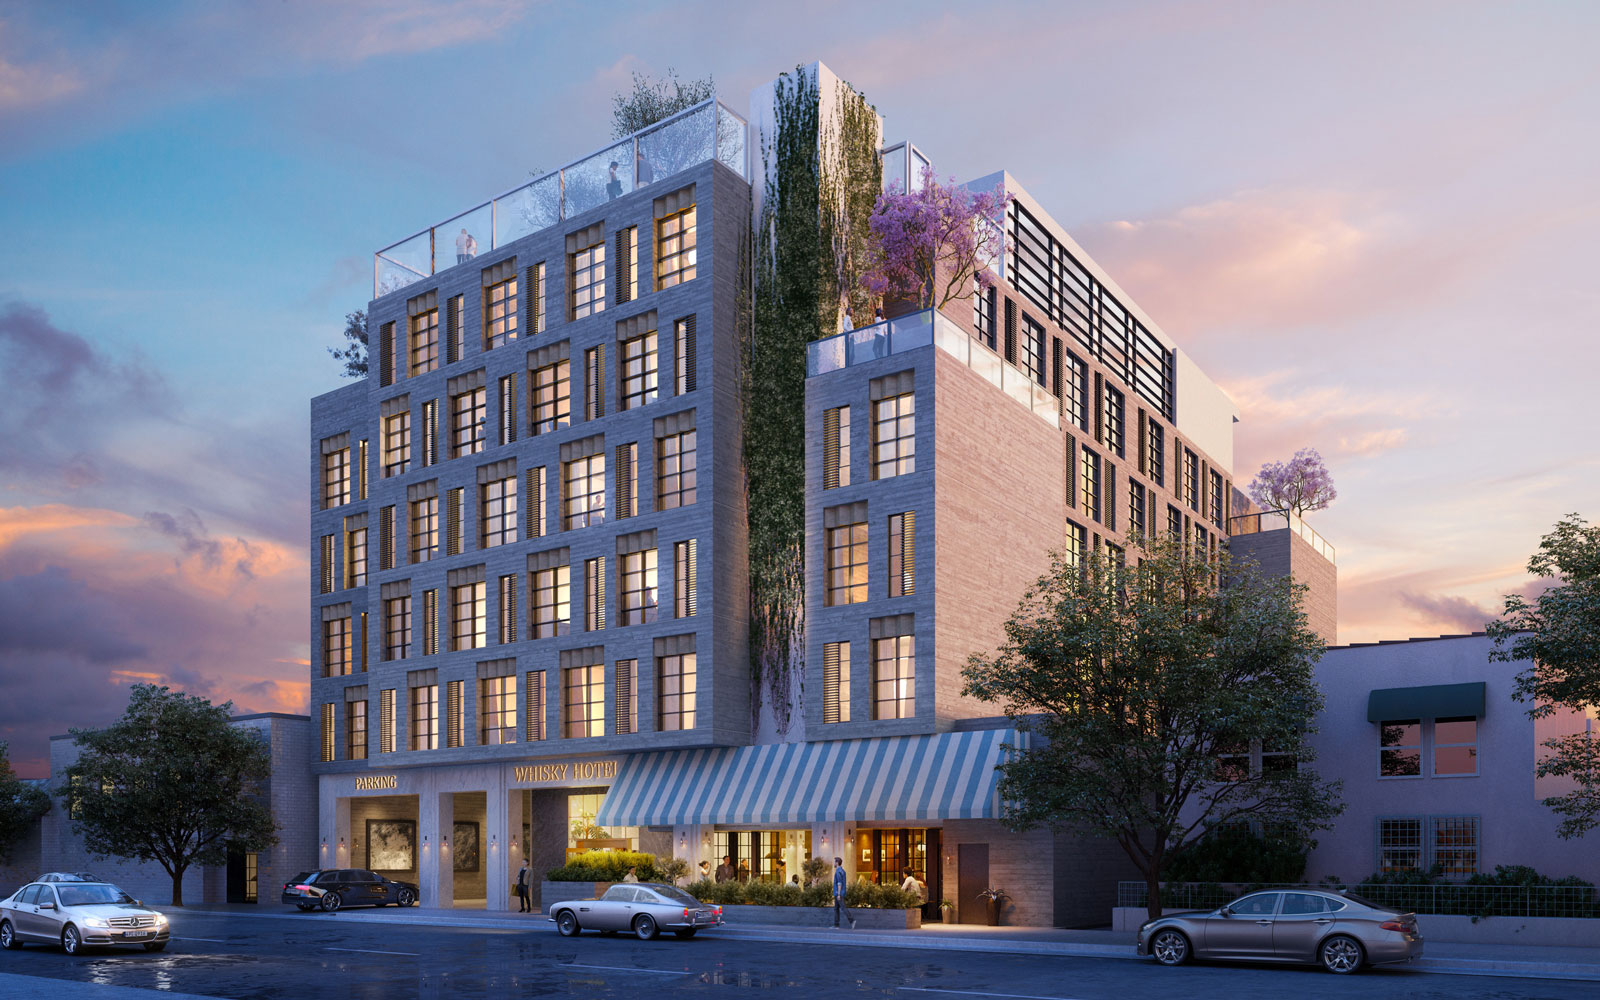 The facade of the Whisky Hotel opening in Hollywood, California.